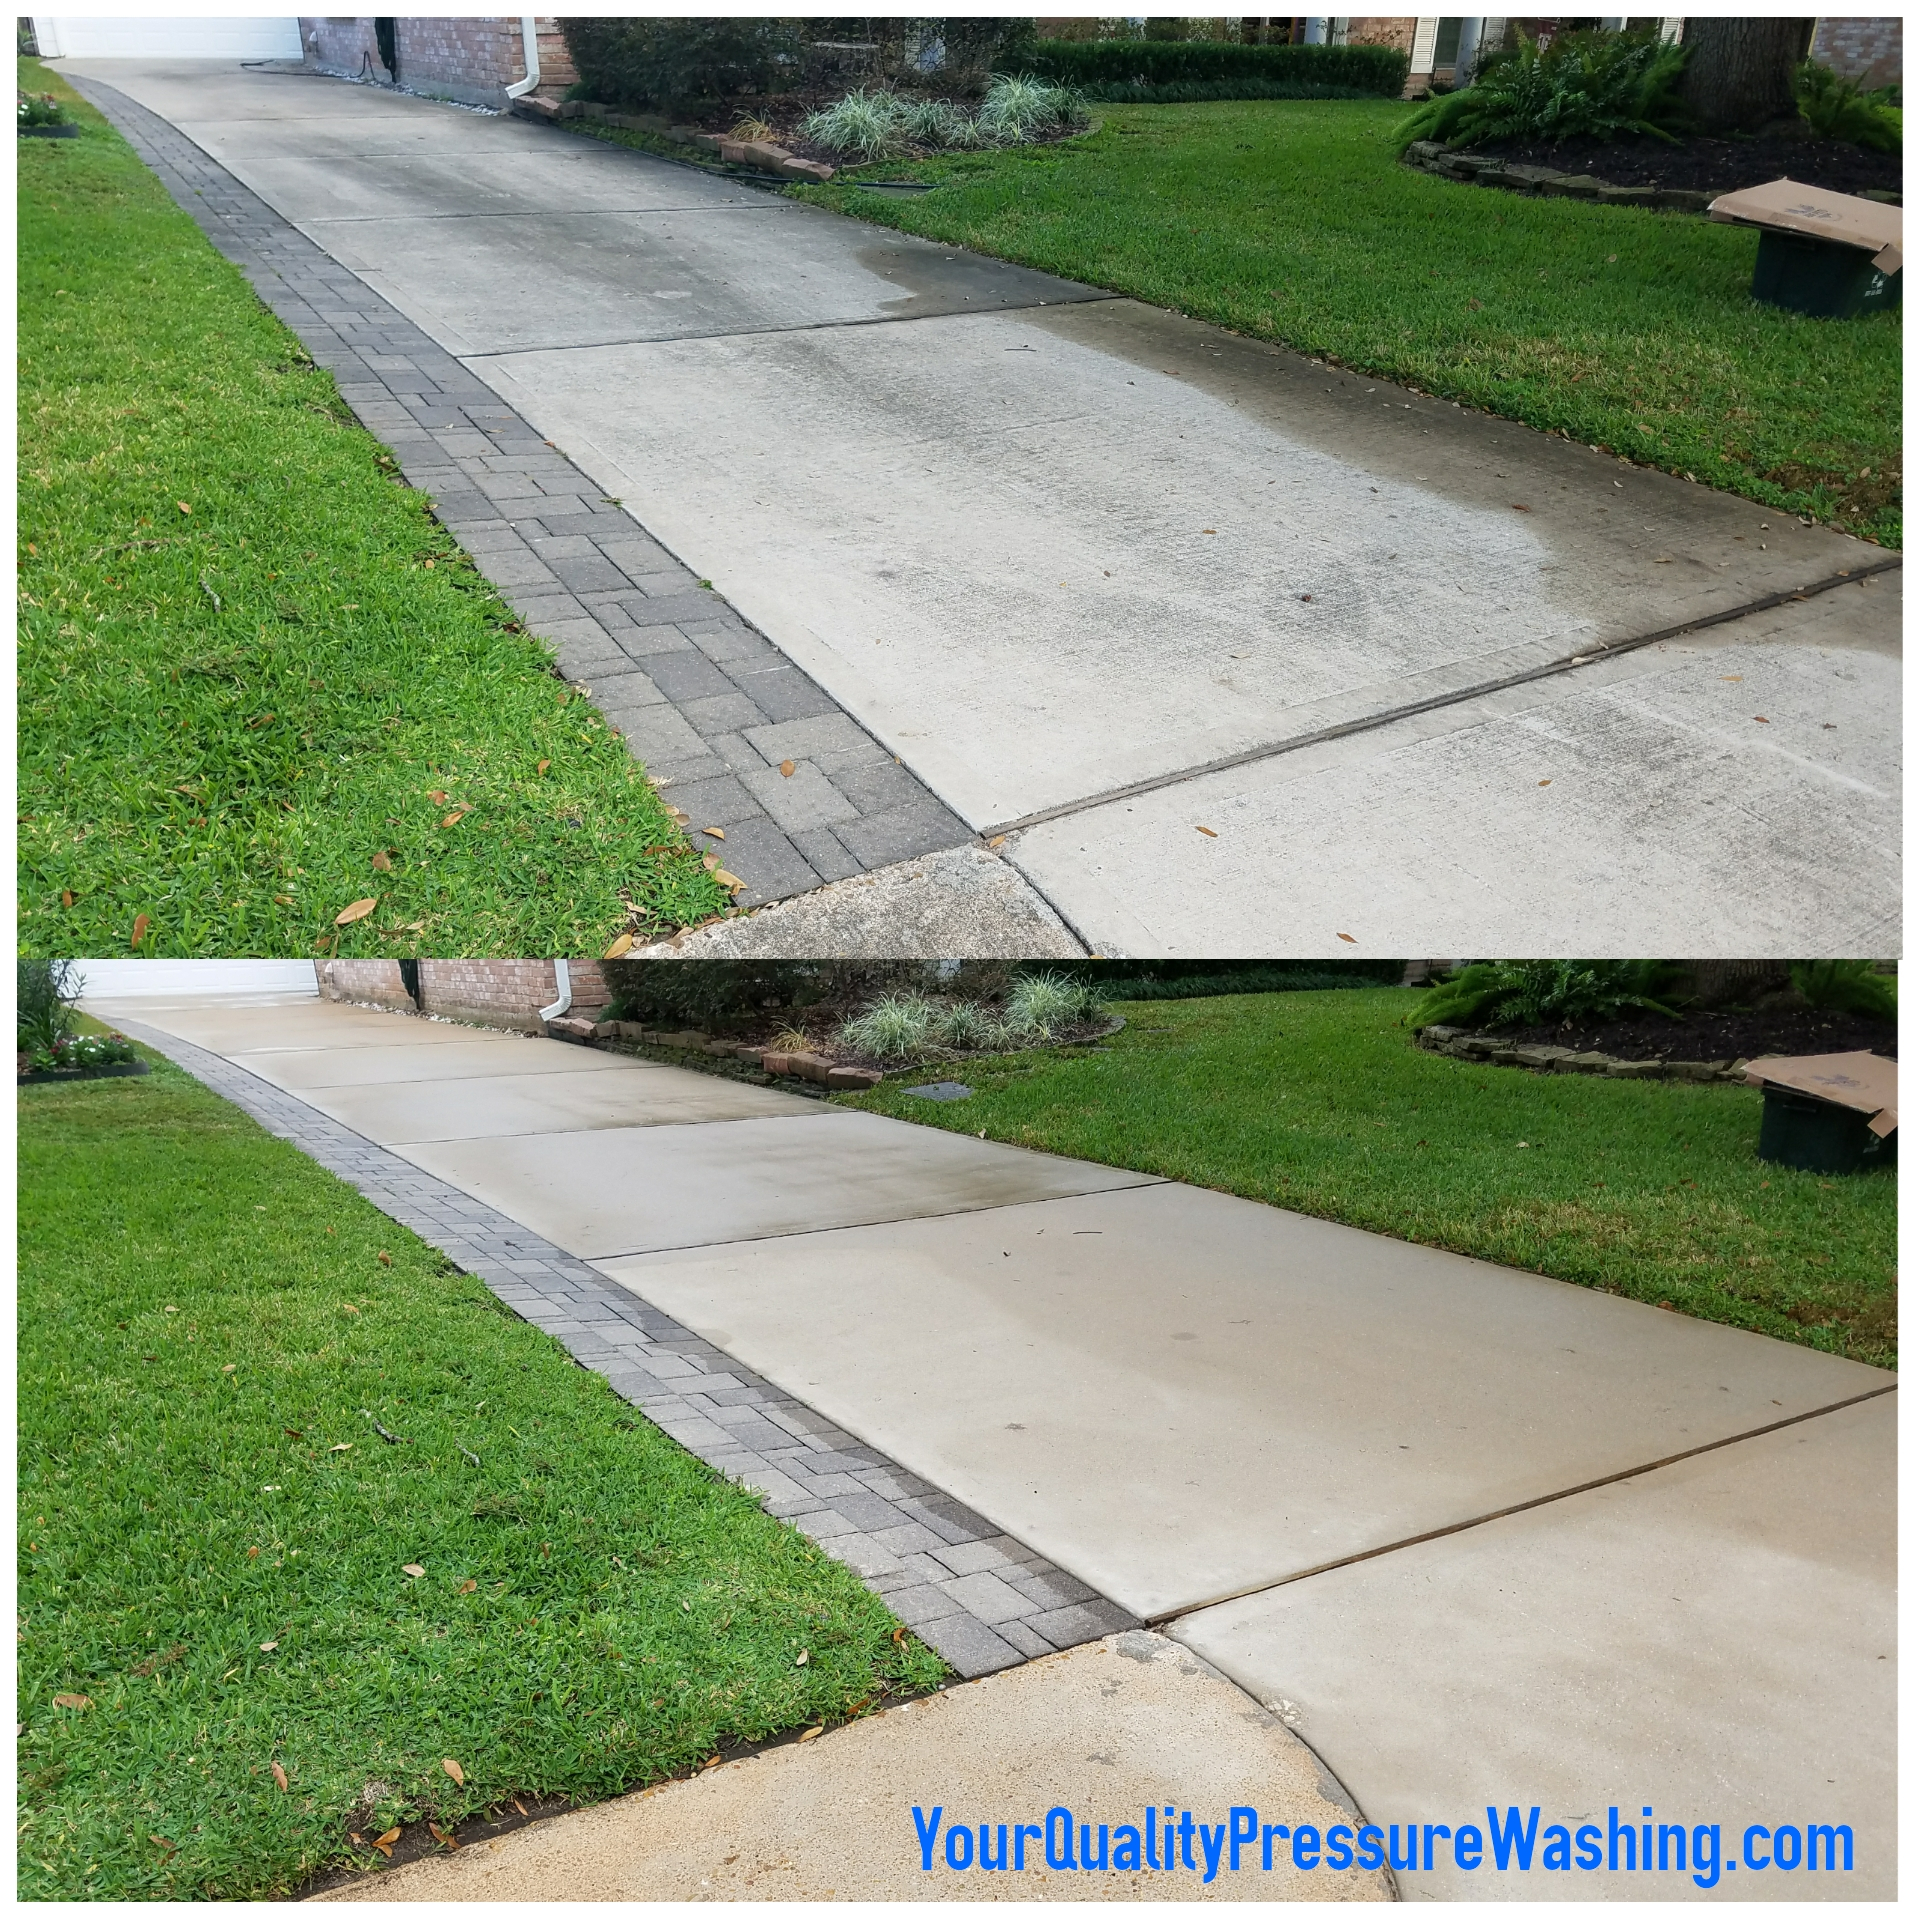 Your Quality Pressure Washing